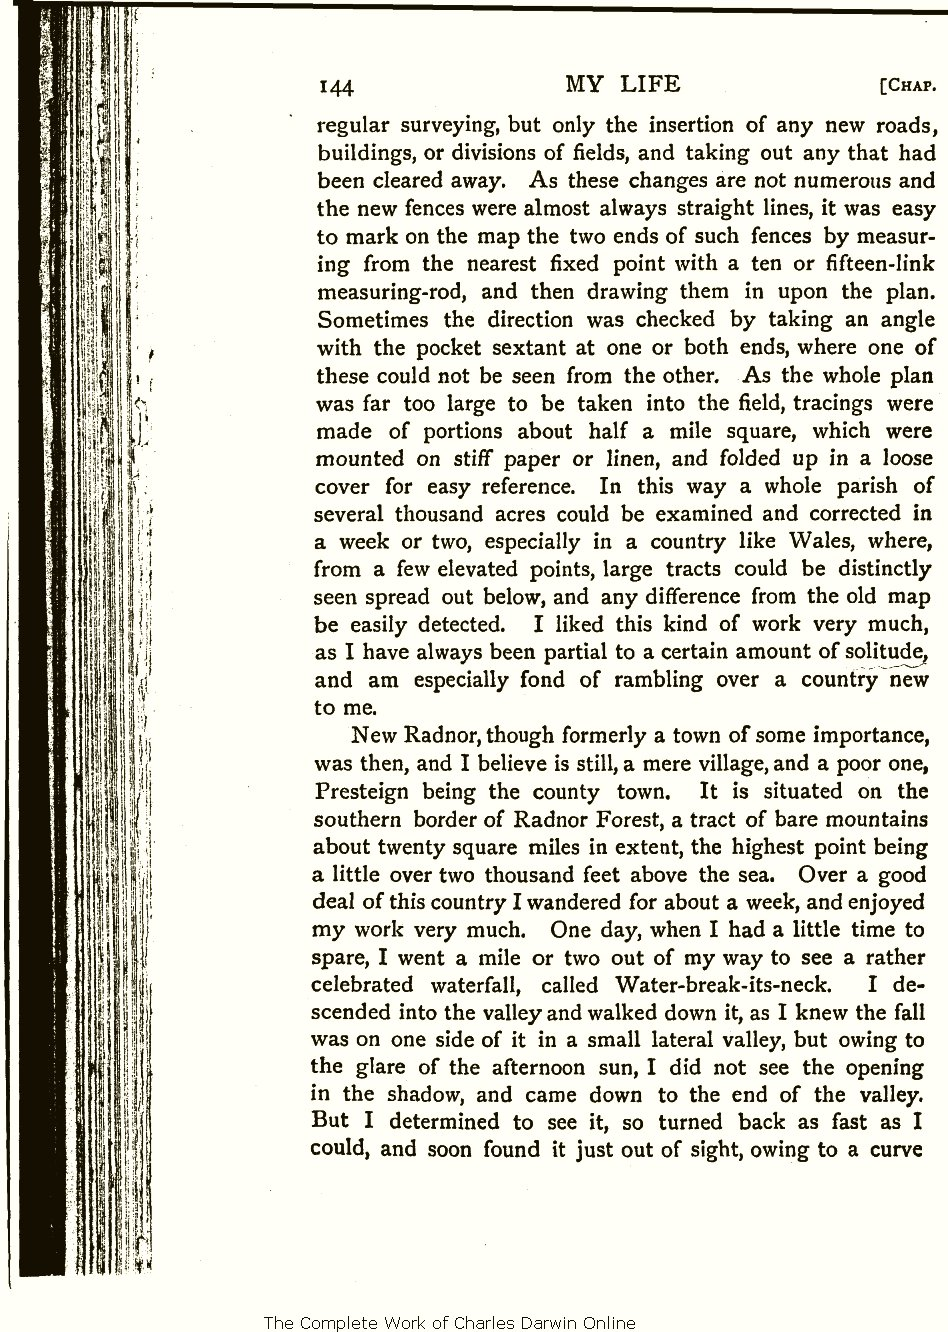 Wallace, A. R. 1905. My life: A record of events and opinions. London:  Chapman and Hall. Volume 1.